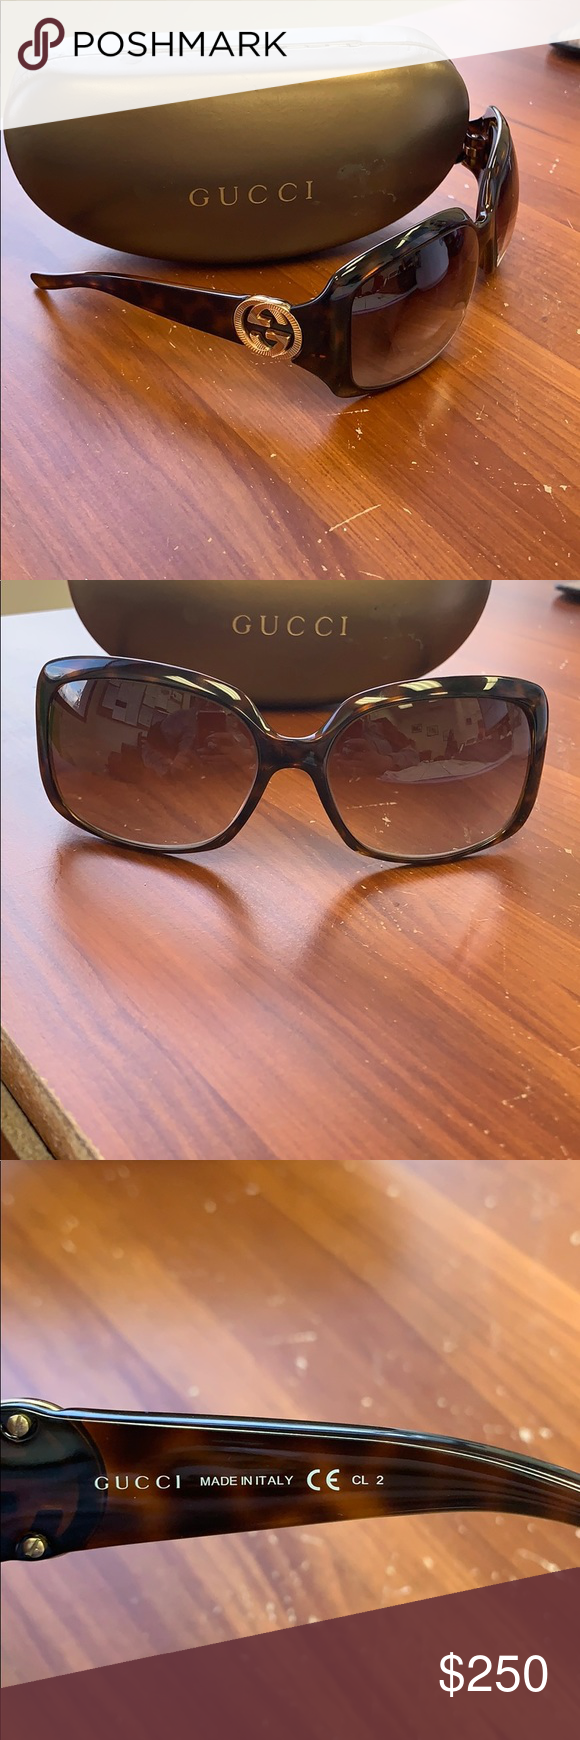 be31ab39e8a ⚜️EUC Authentic Gucci GG 3164 s Sunglasses ⚜ Like brand new! With